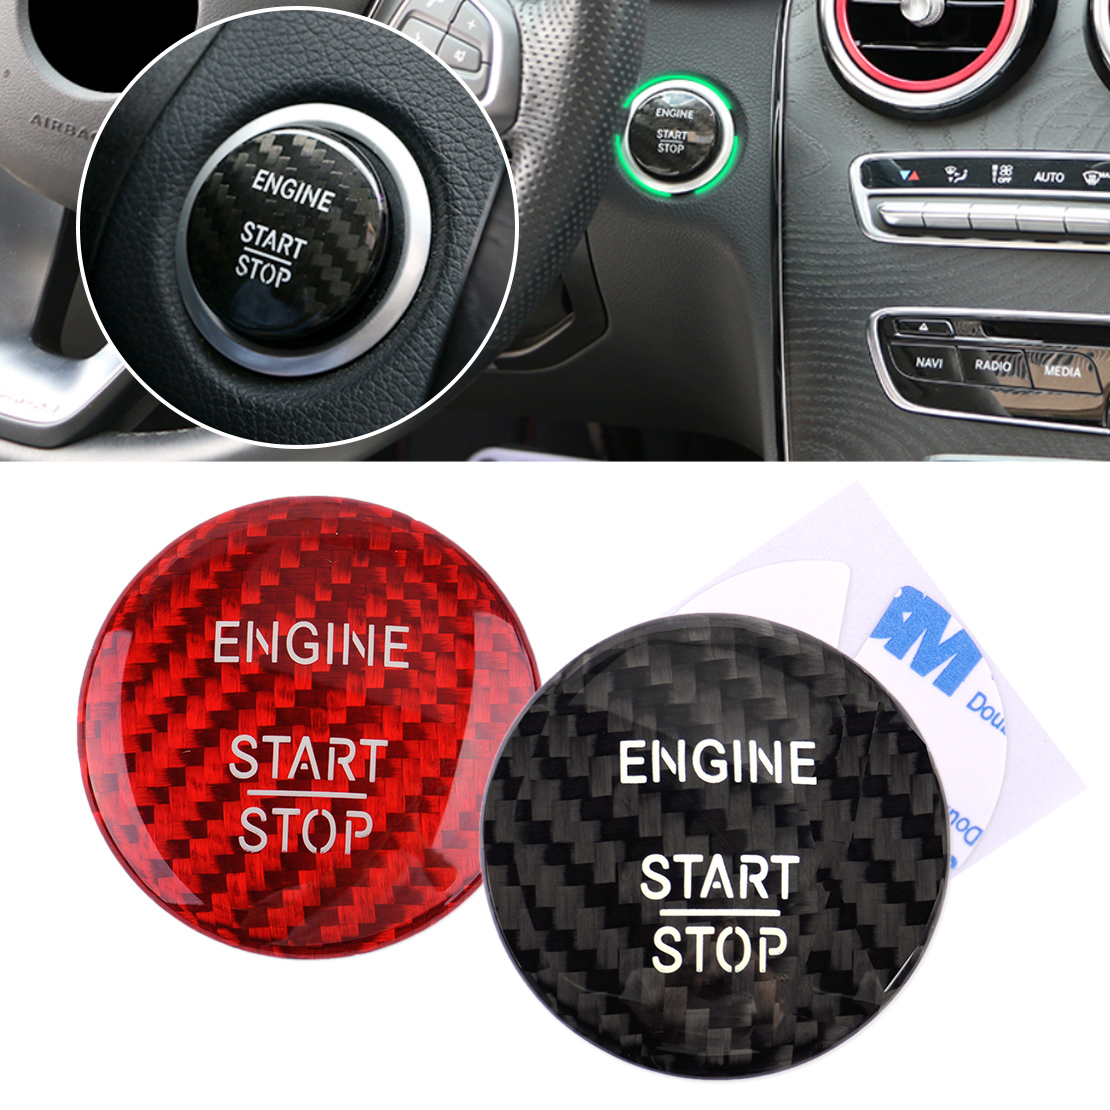 beler Carbon Fiber Start Stop Engine Push Button Key Trim Cover Fit for Mercedes Benz E Class W212 E180 E200 E260 E300 E320 E400 dhl shipping 23pc x error free led interior light kit for mercedes for mercedes benz e class w212 e350 e400 e550 e63amg 09 15